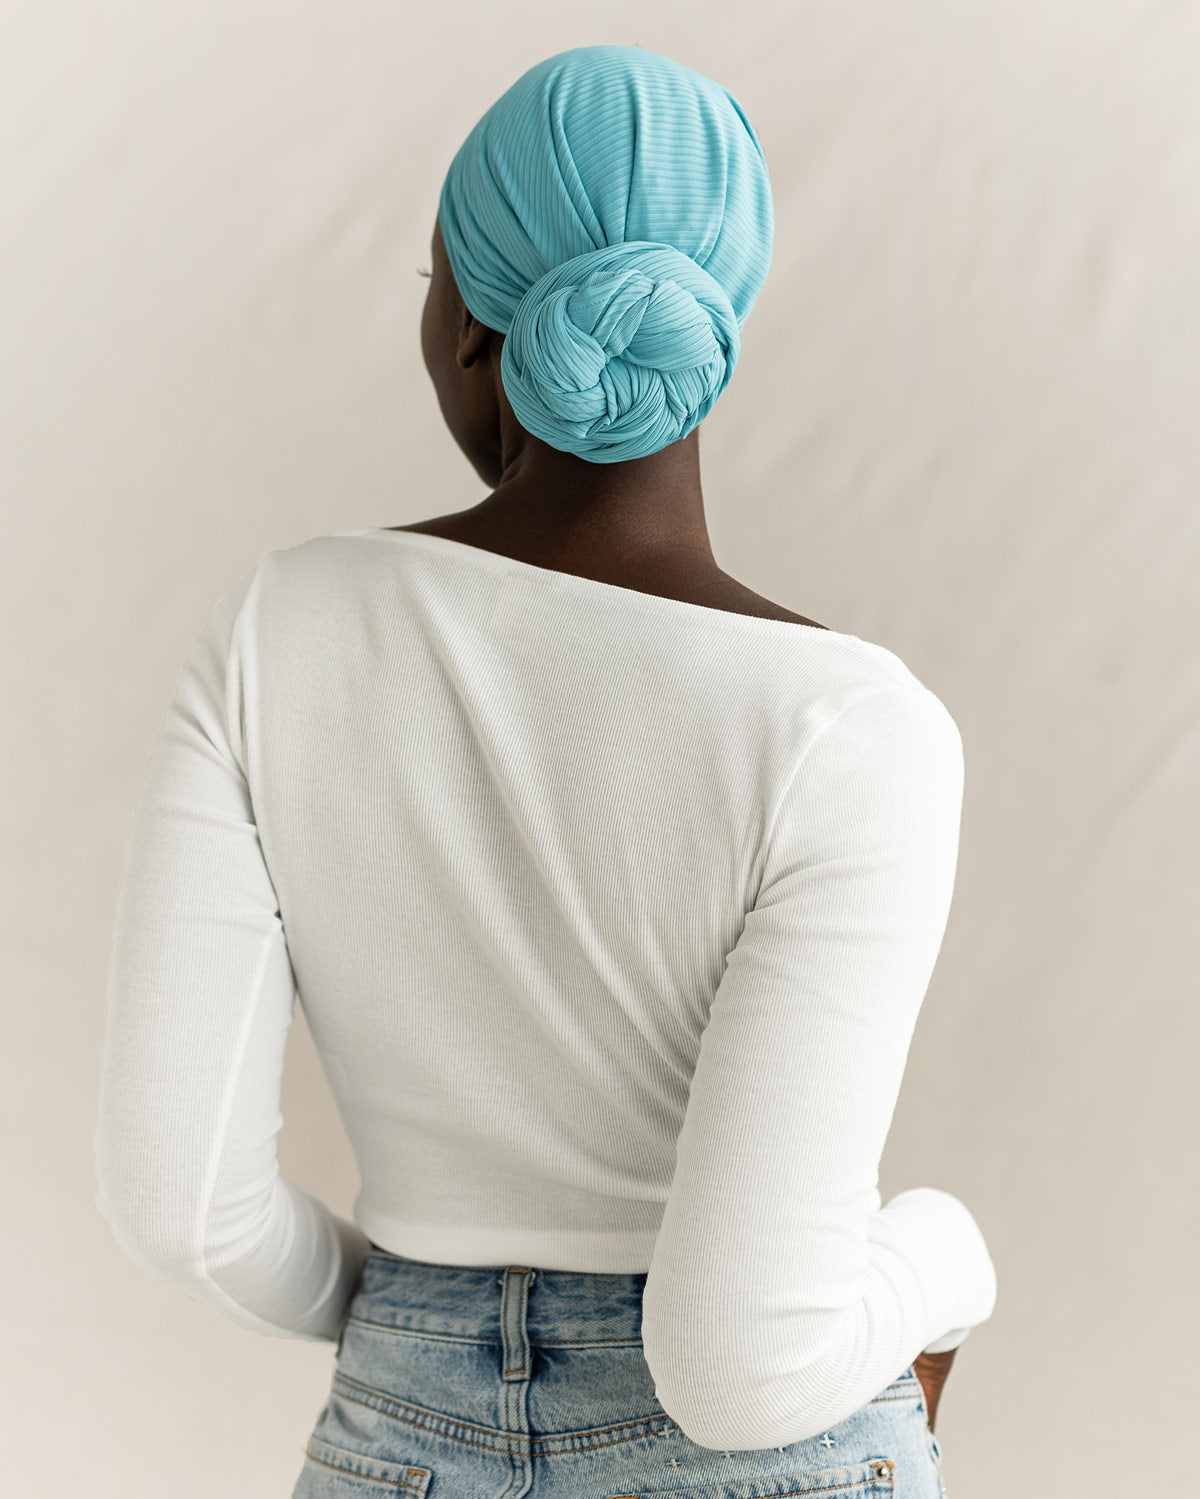 Back Twist Bun